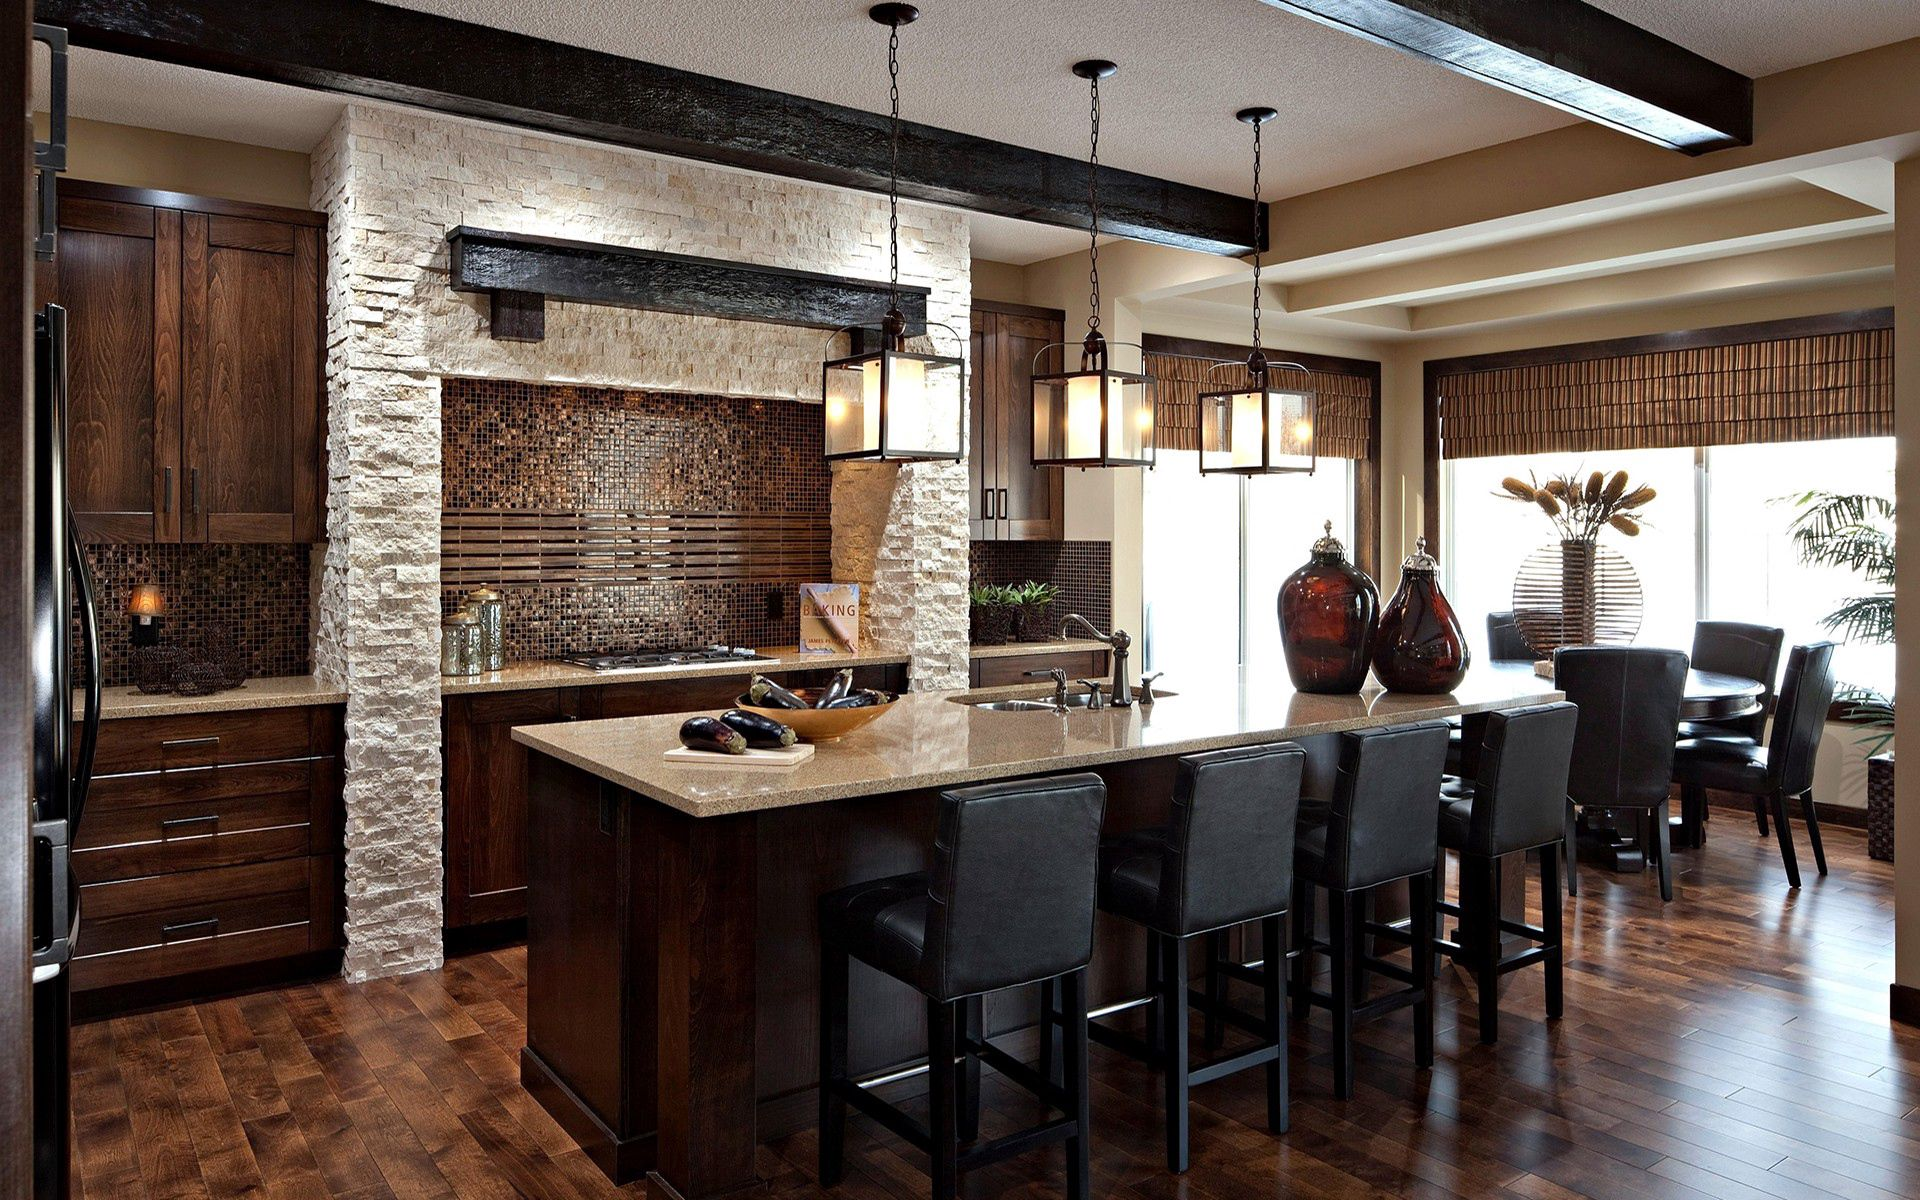 99096 download wallpaper Interior, Miscellanea, Miscellaneous, Design, Dining Room, Kitchen screensavers and pictures for free